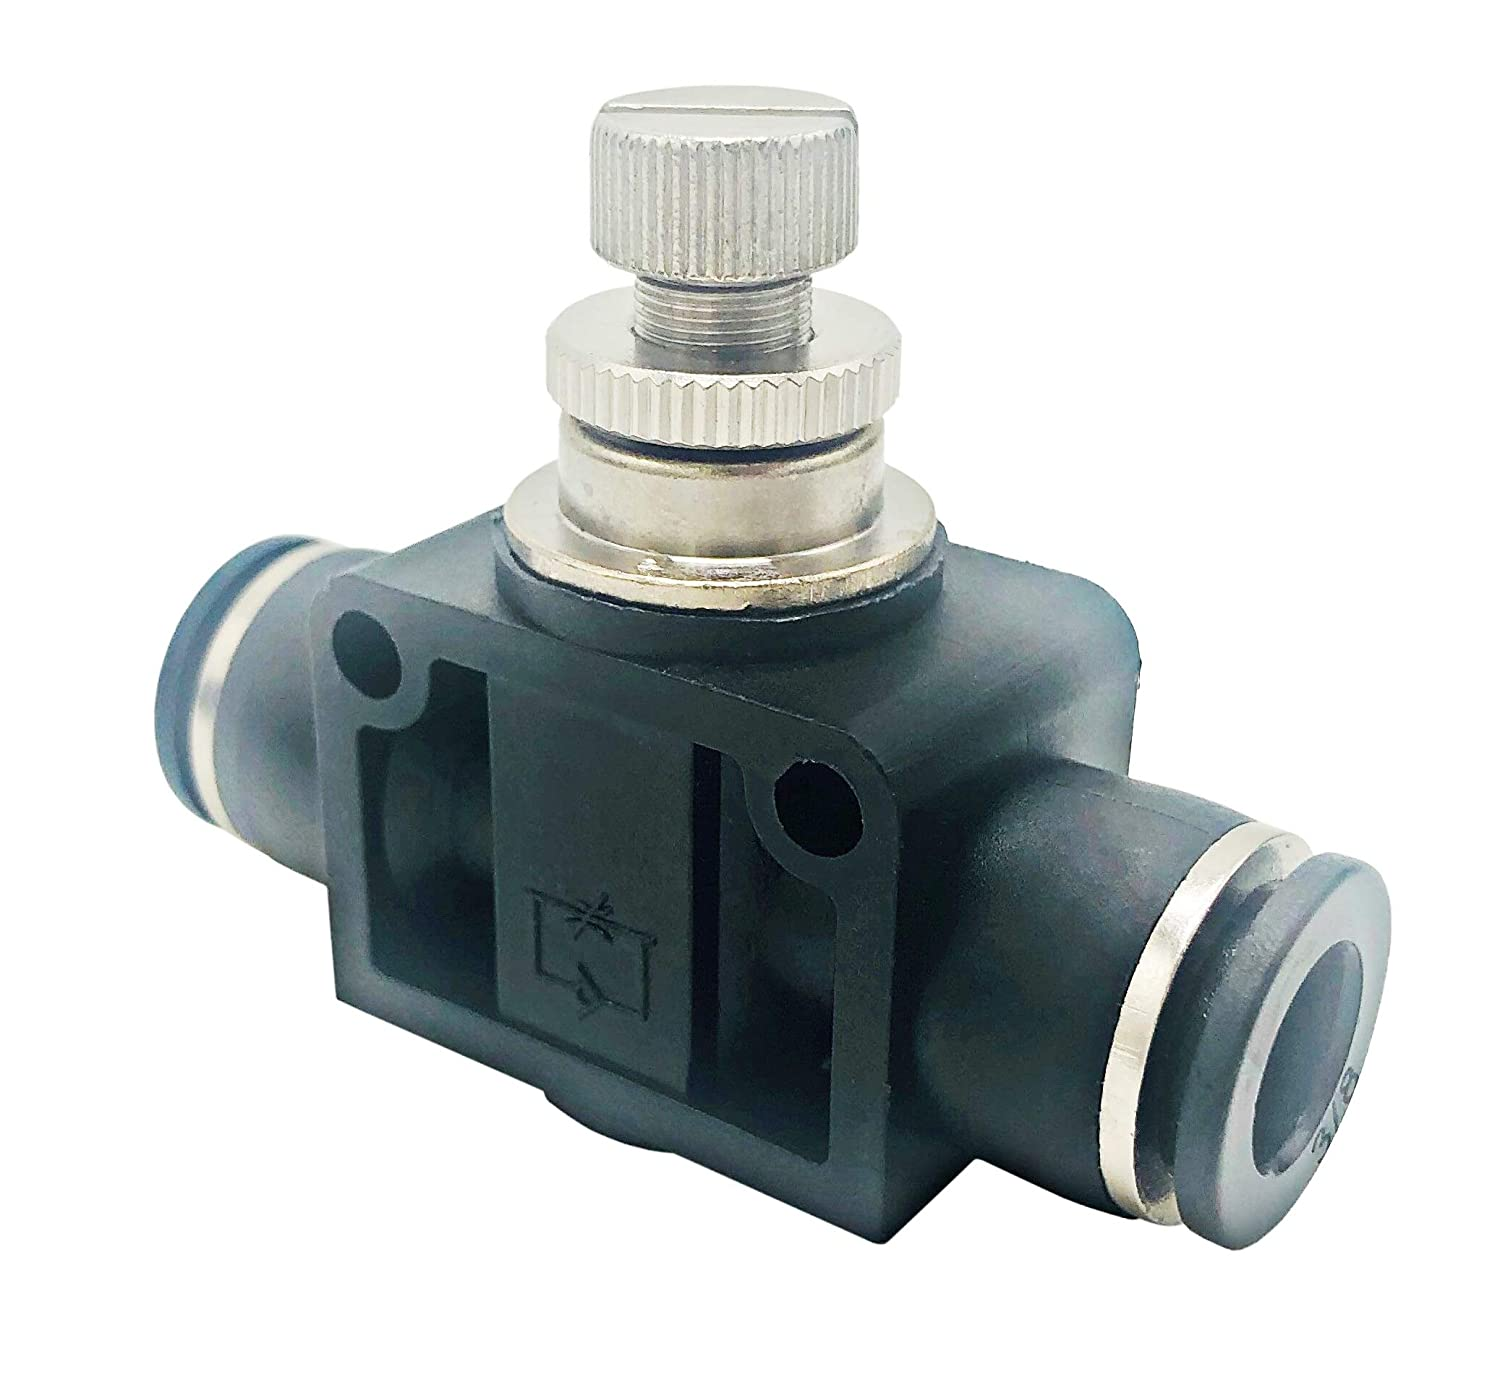 Air Flow Control Valve Speed Controller Push to Connect Straight Union,3//8 OD X 3//8 OD Tube